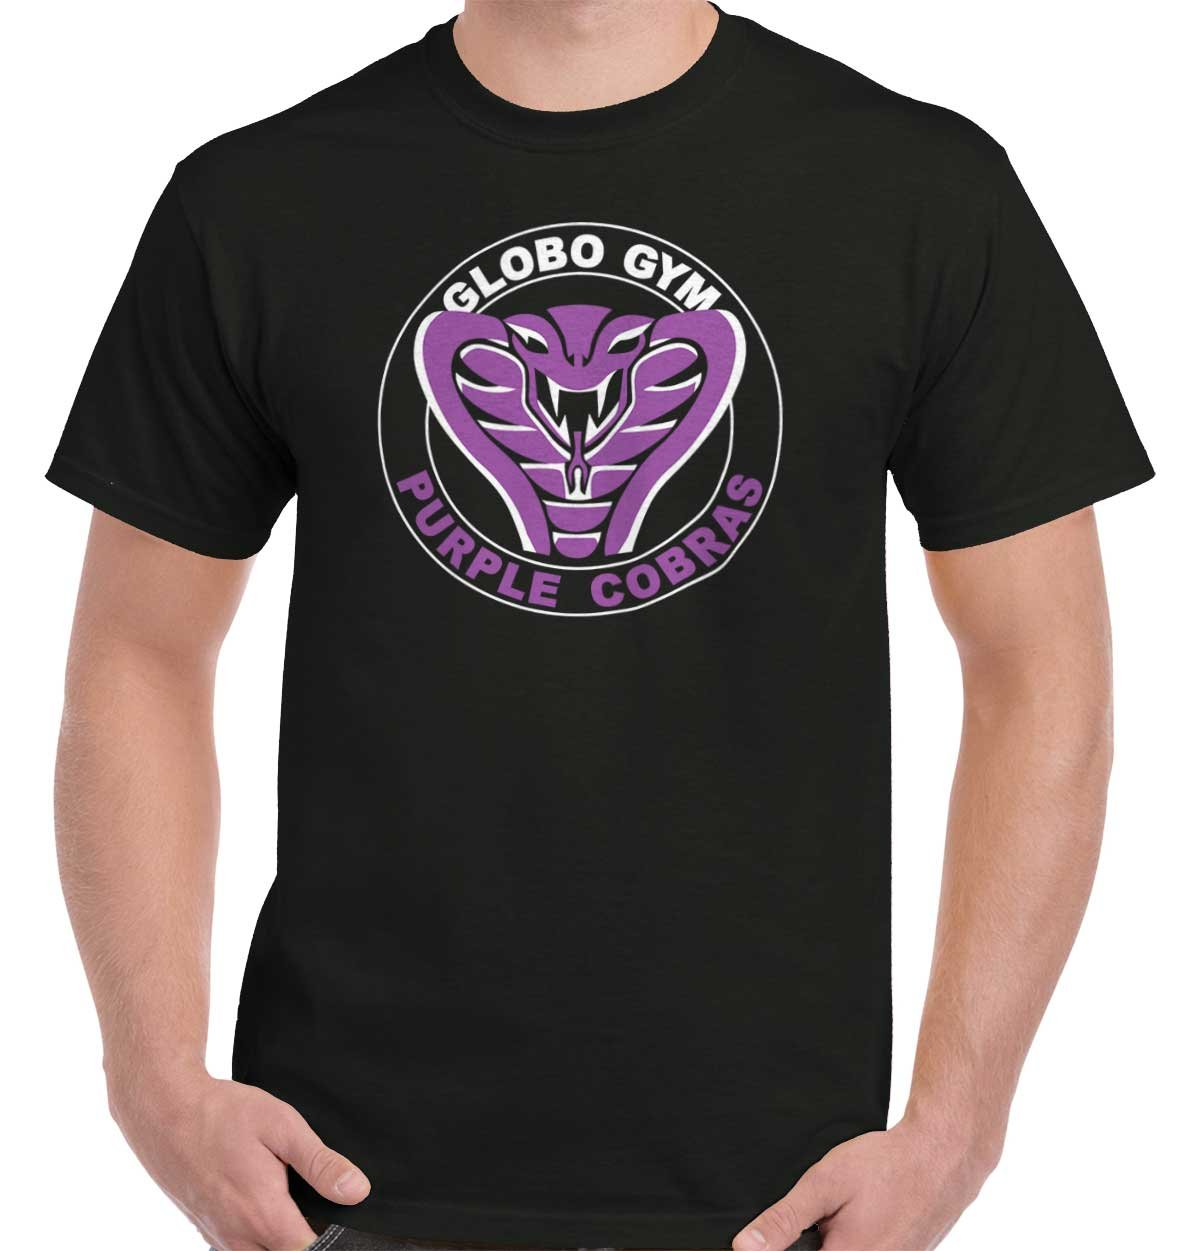 Globo Gym Dodgeball Funny Gift Cute Cool Purple Cobras Edgy T-Shirt Tee